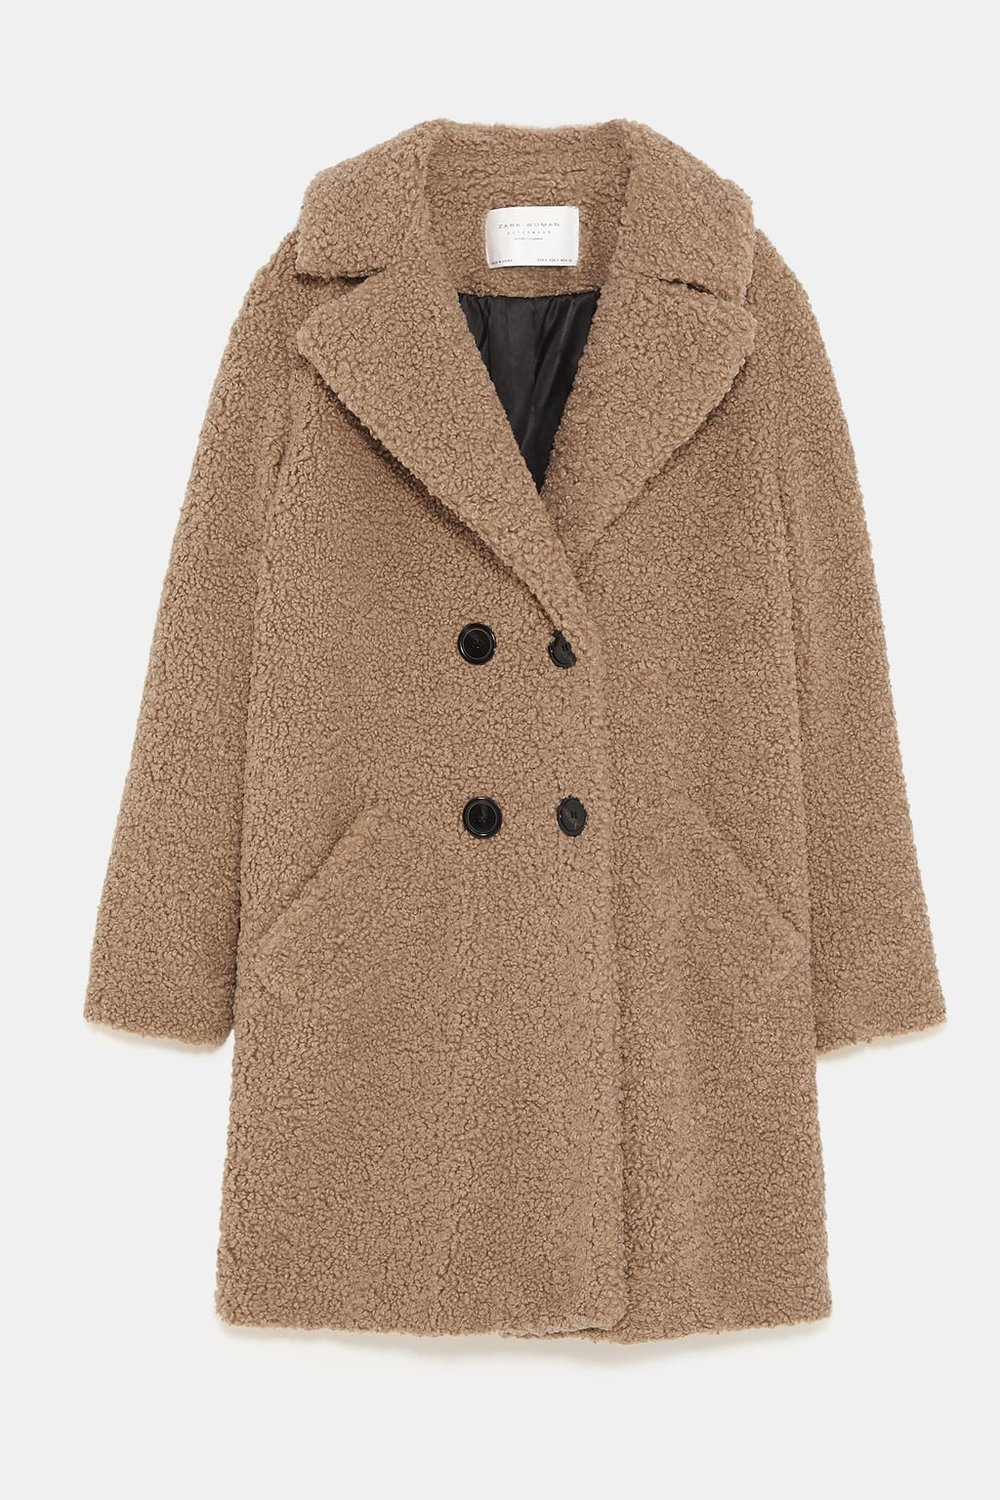 Textured Faux Shearling Coat, Zara, £89.99